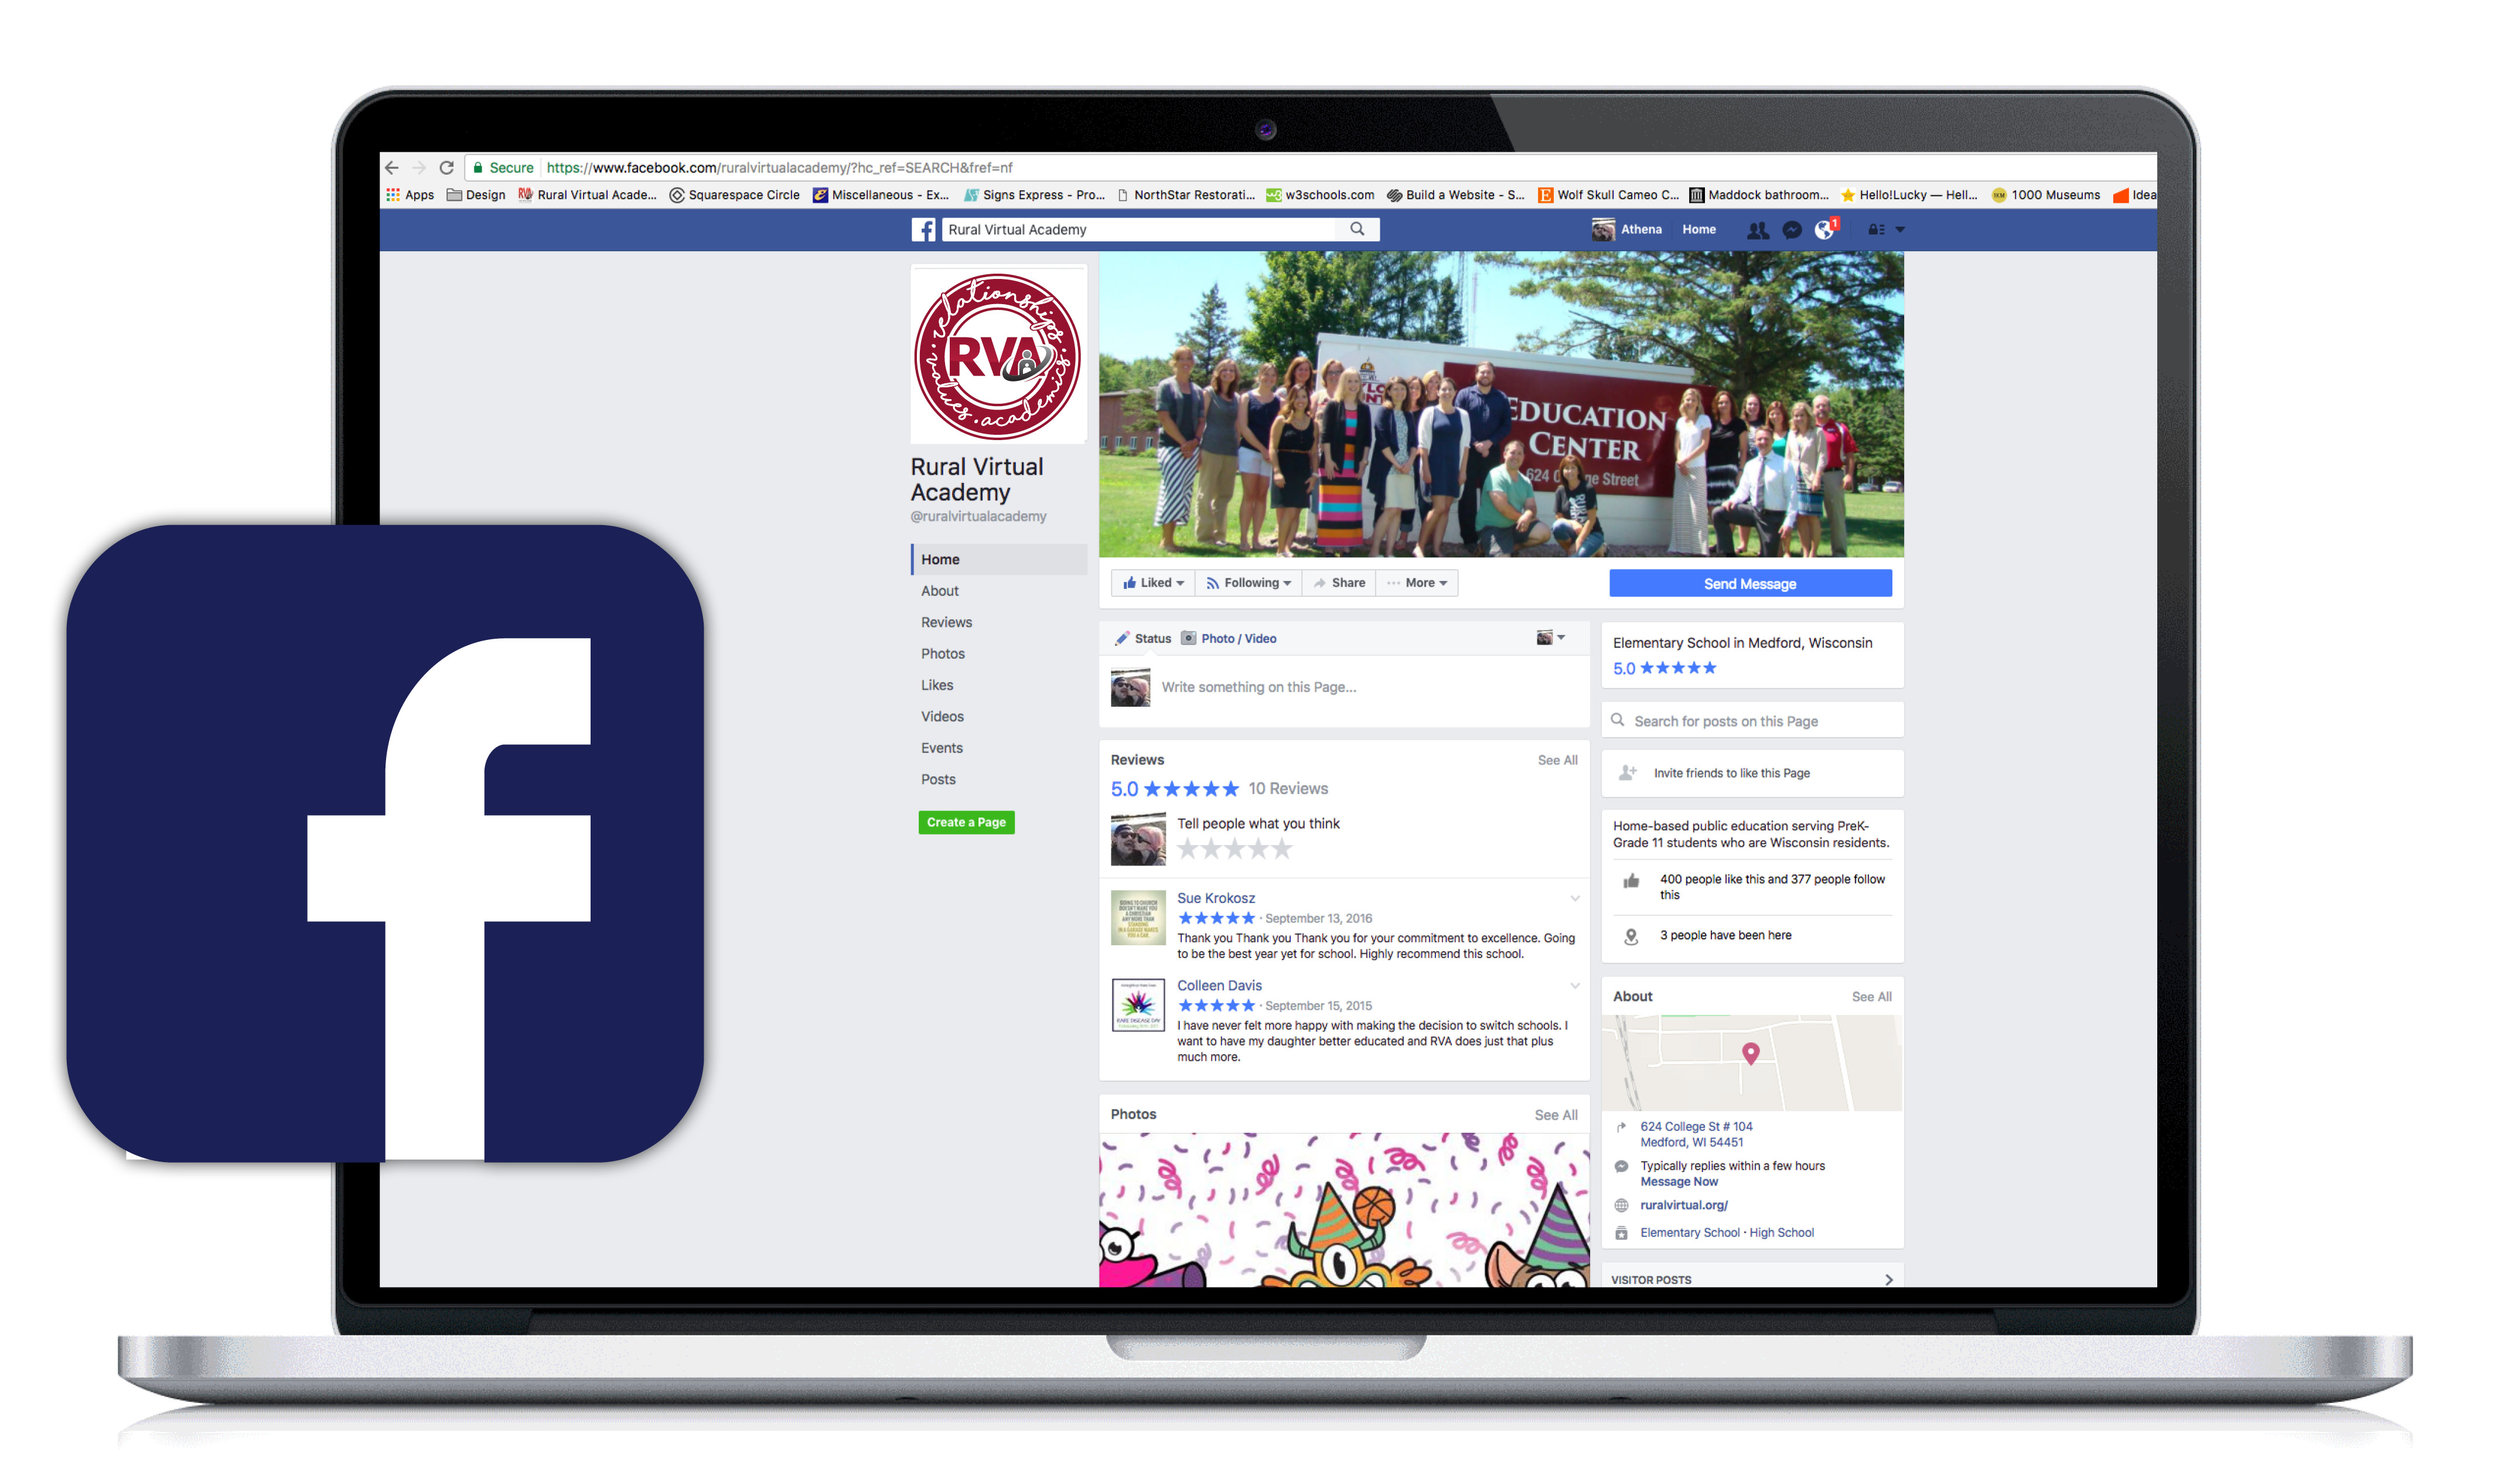 Check out our facebook page and see how our awesome students connect and learn! -